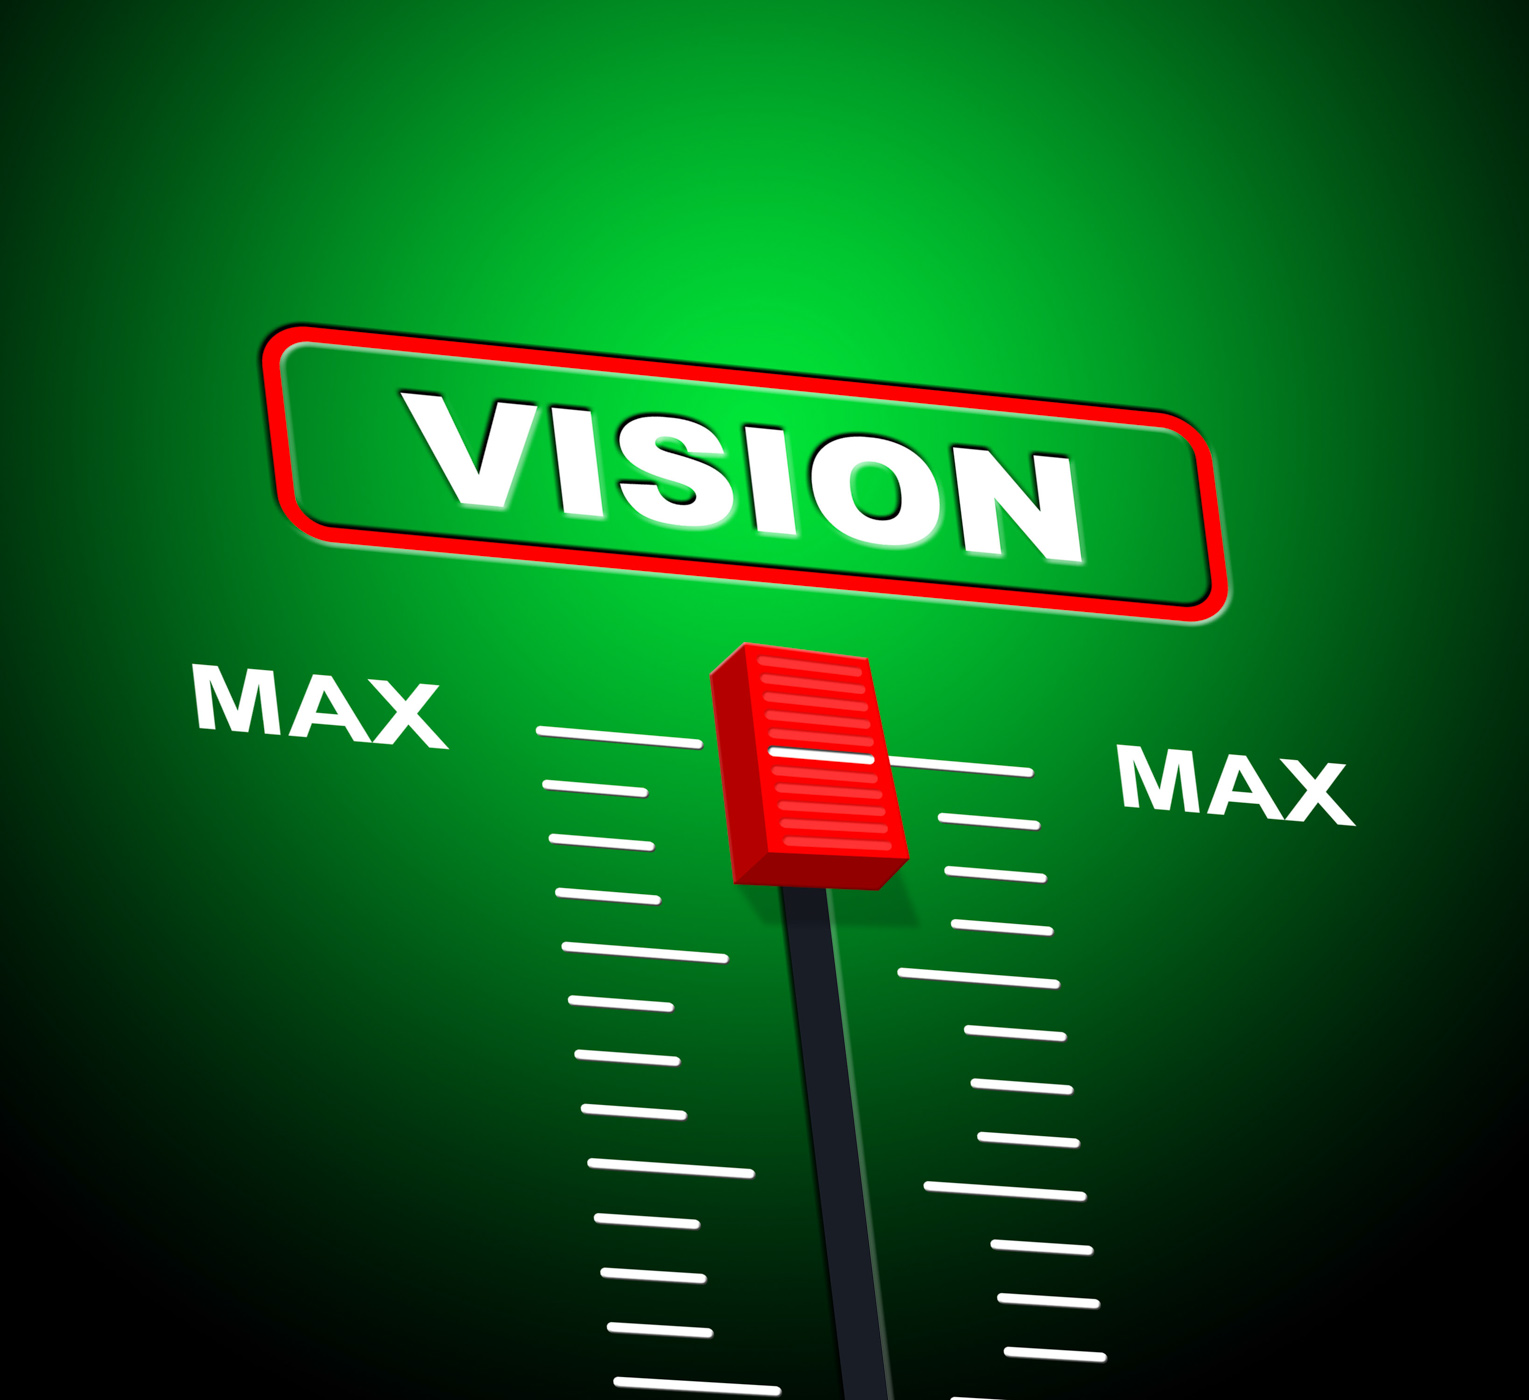 Max Vision Shows Upper Limit And Ceiling, Plan, Peak, Objectives, Most, HQ Photo